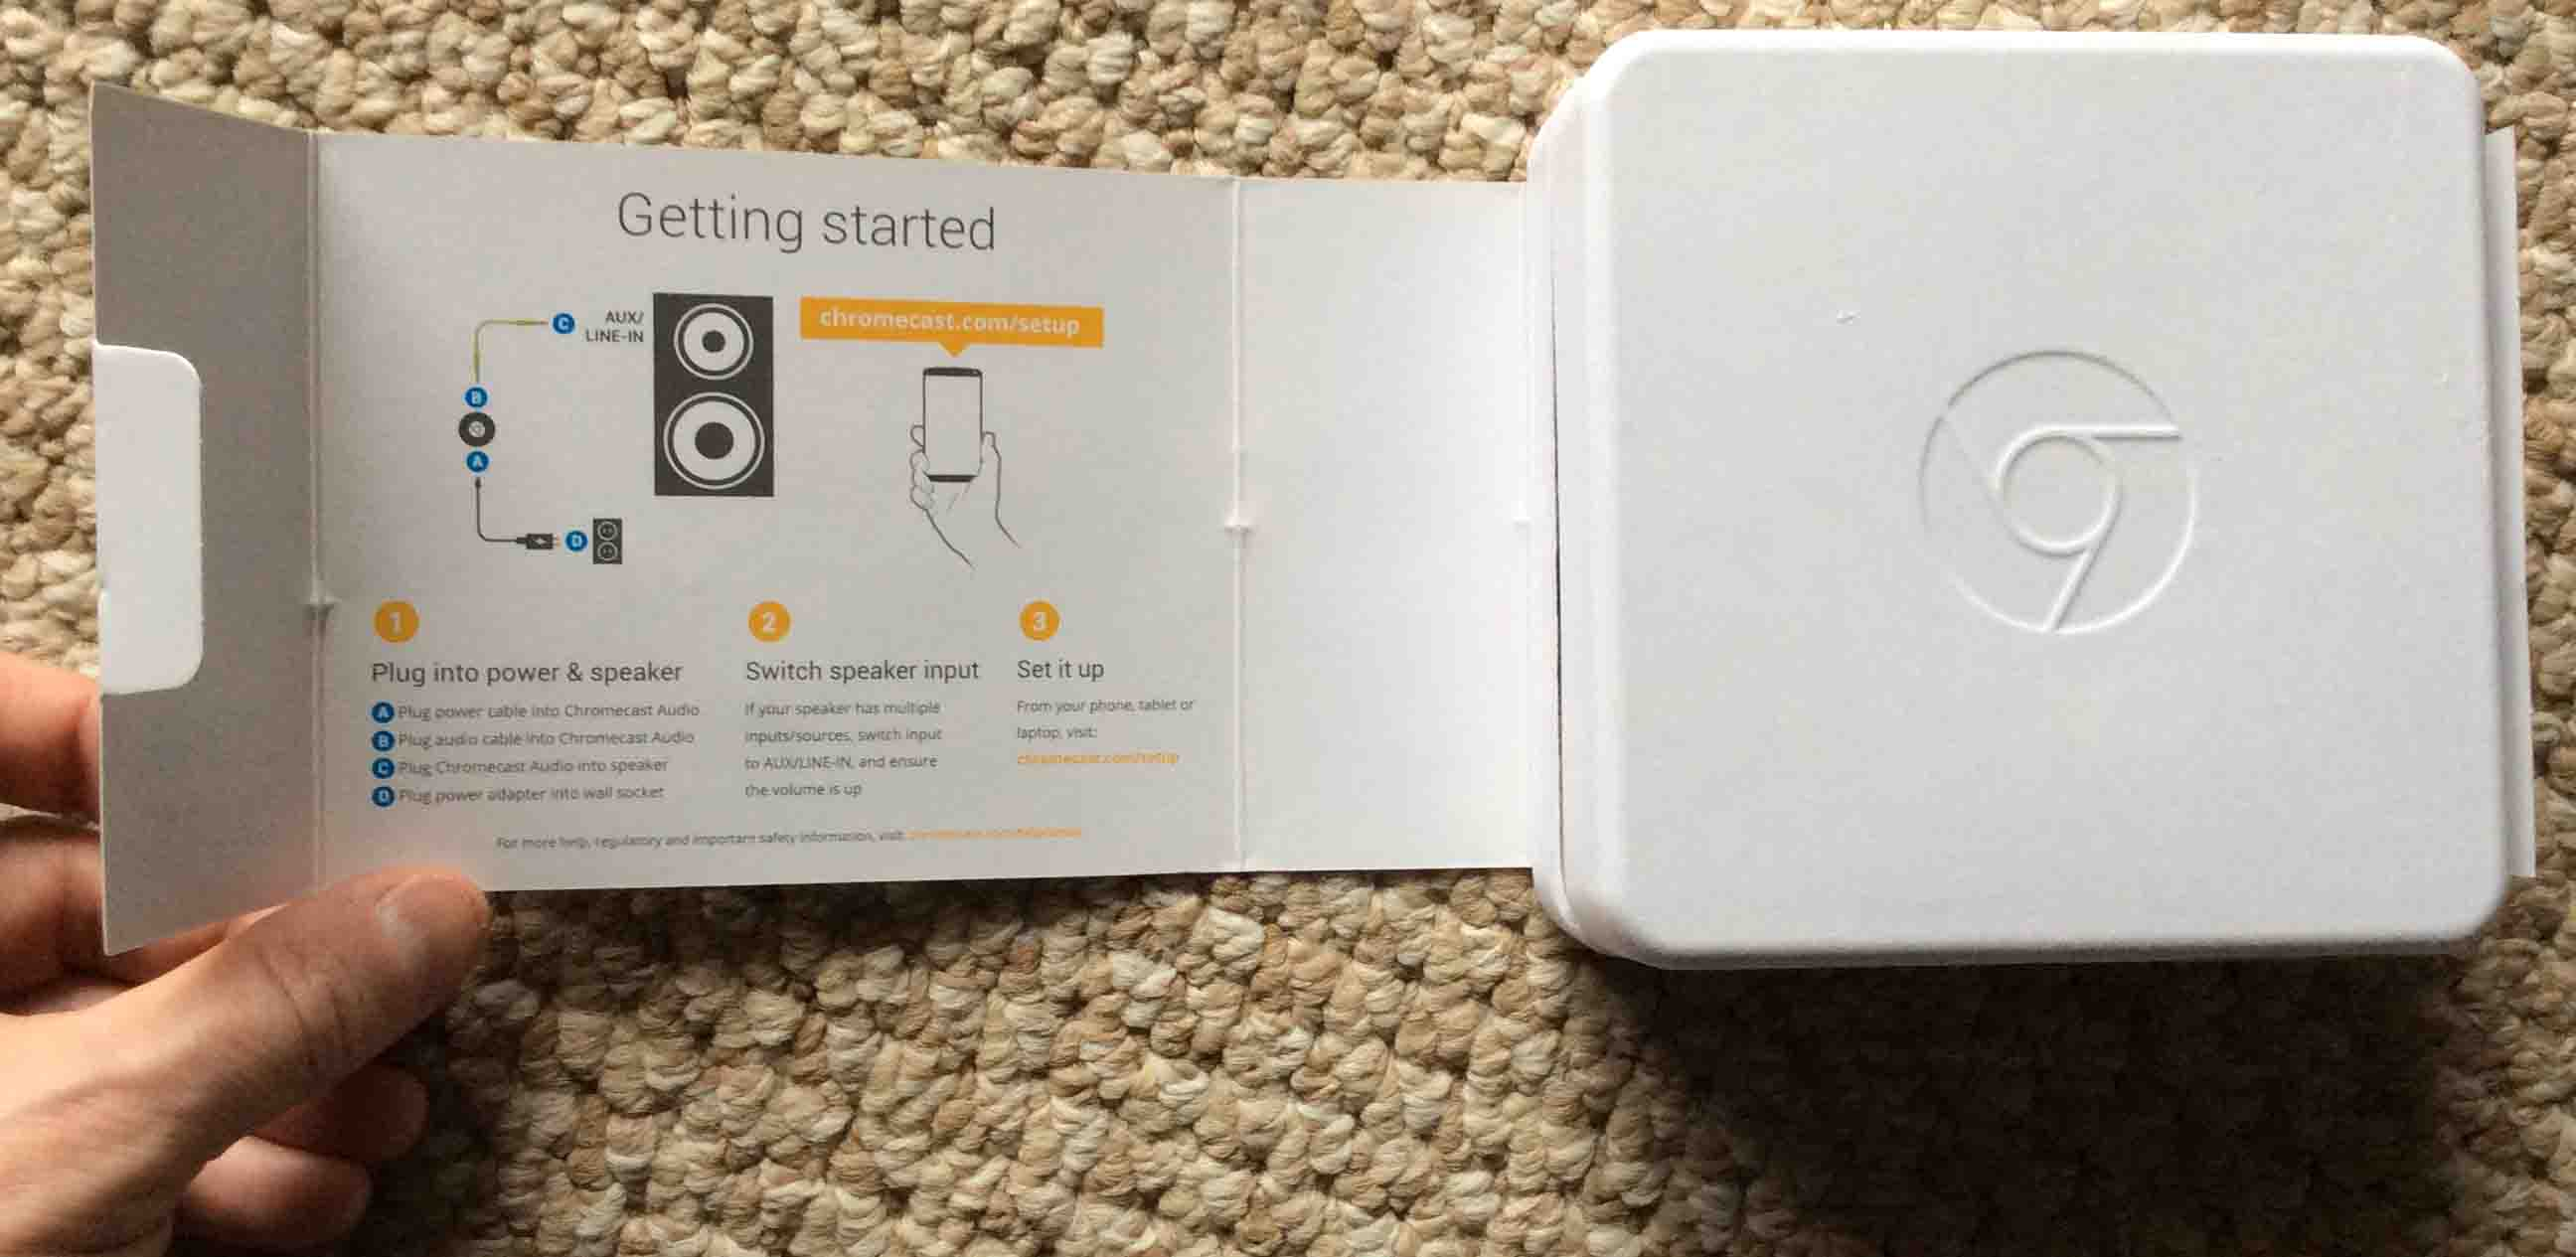 Unboxing And Connecting Google Chromecast Audio Receiver Toms Tek